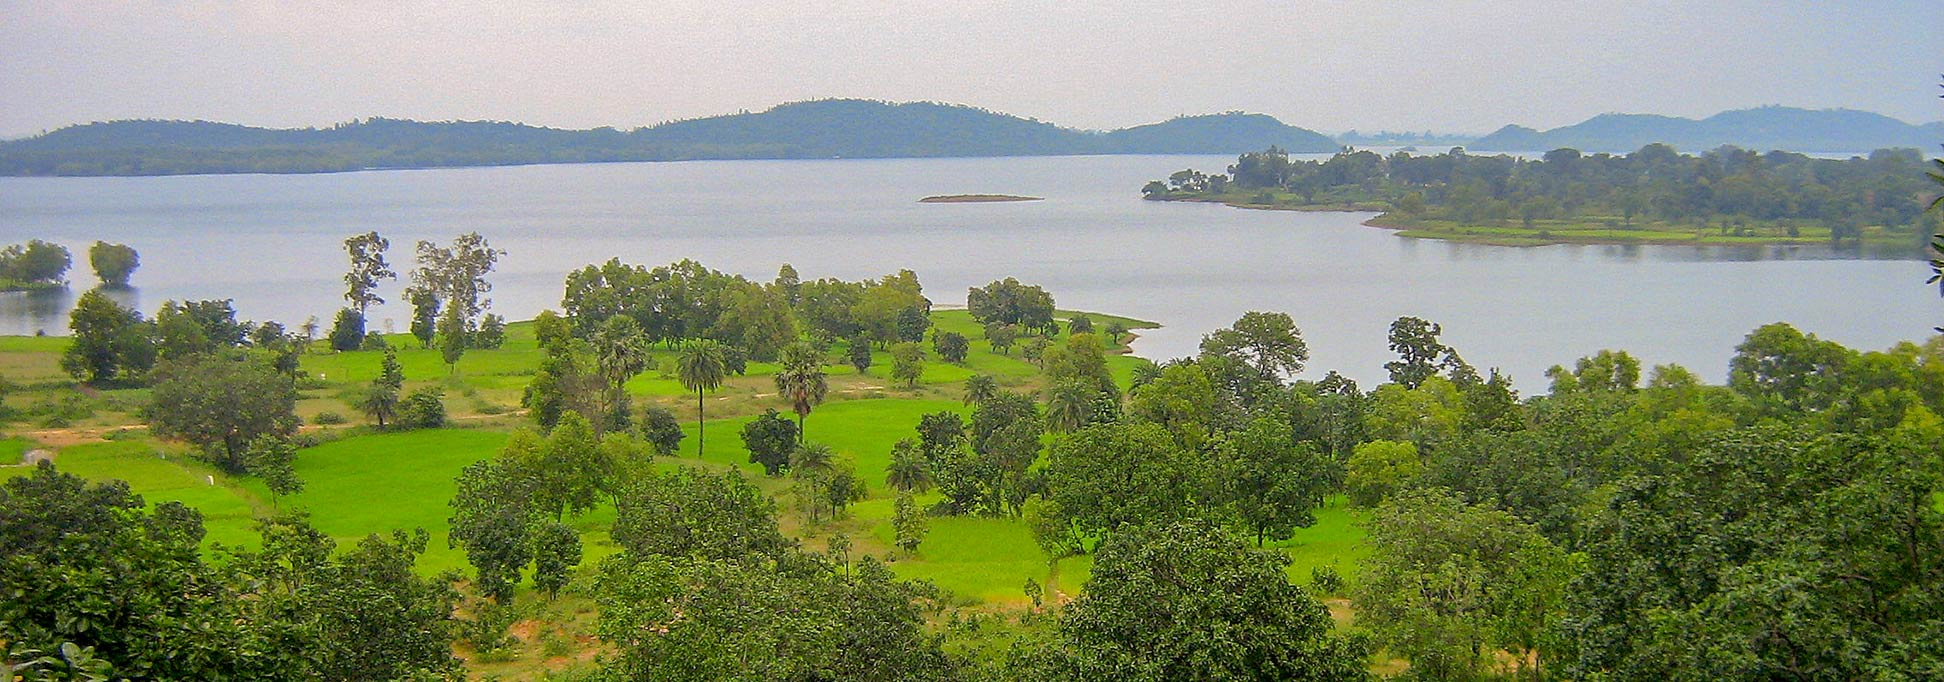 Jharkhand landscape with water reservoir Google Map